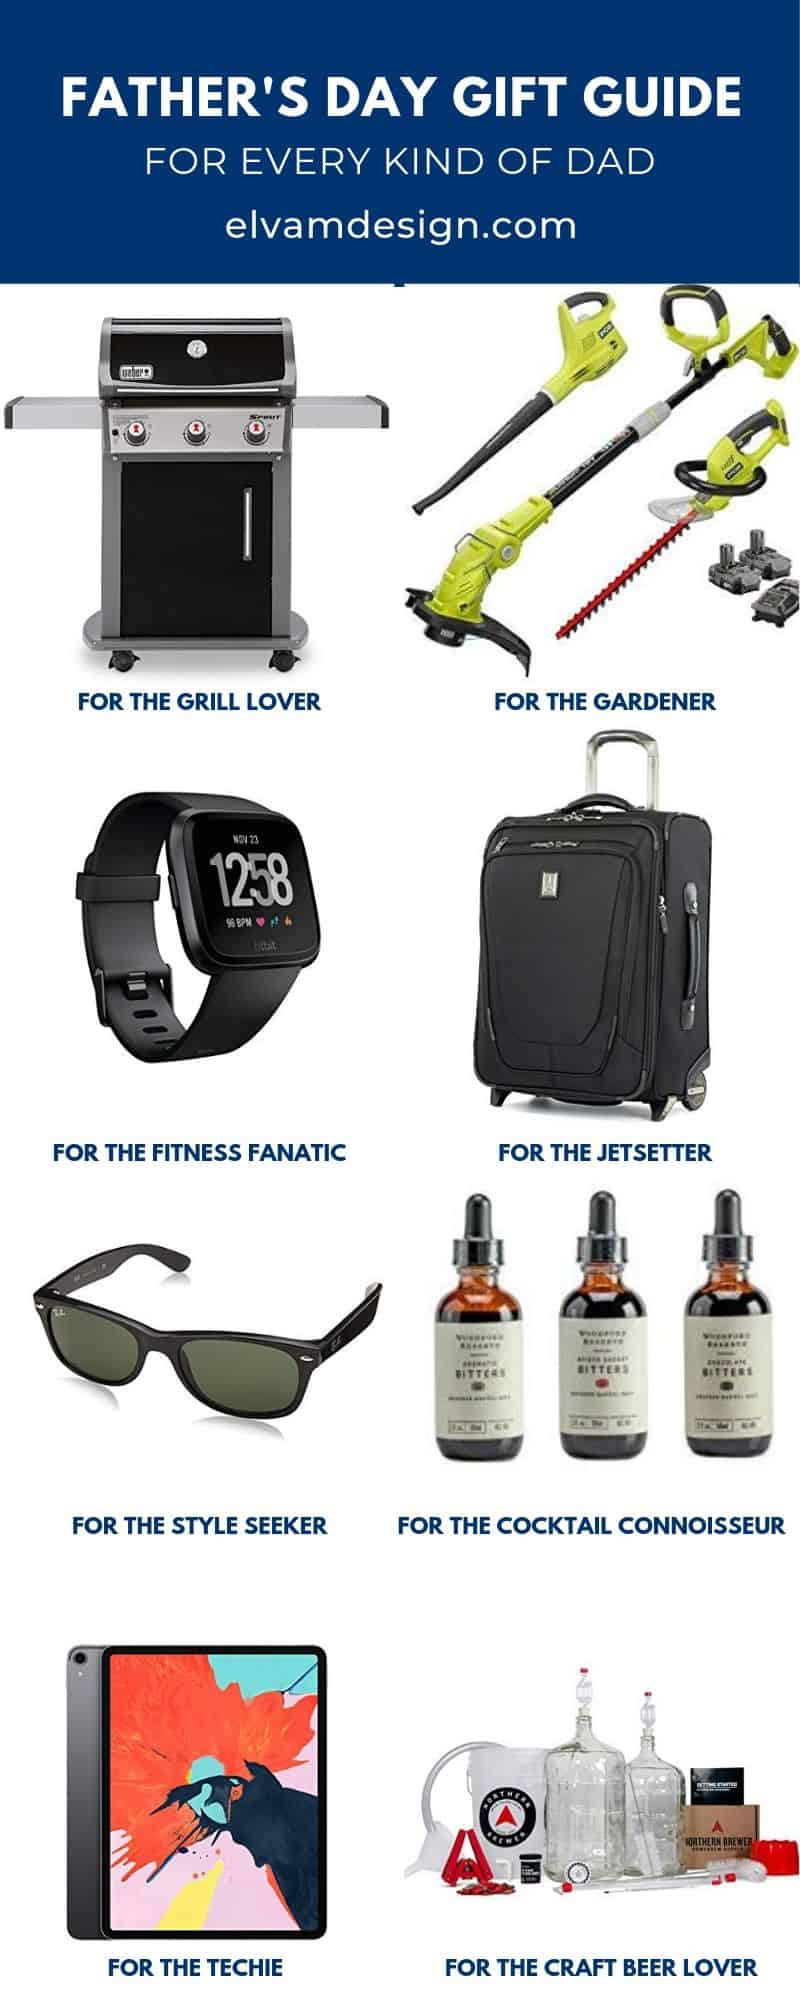 Father's Day Gift Guide for every kind of dad